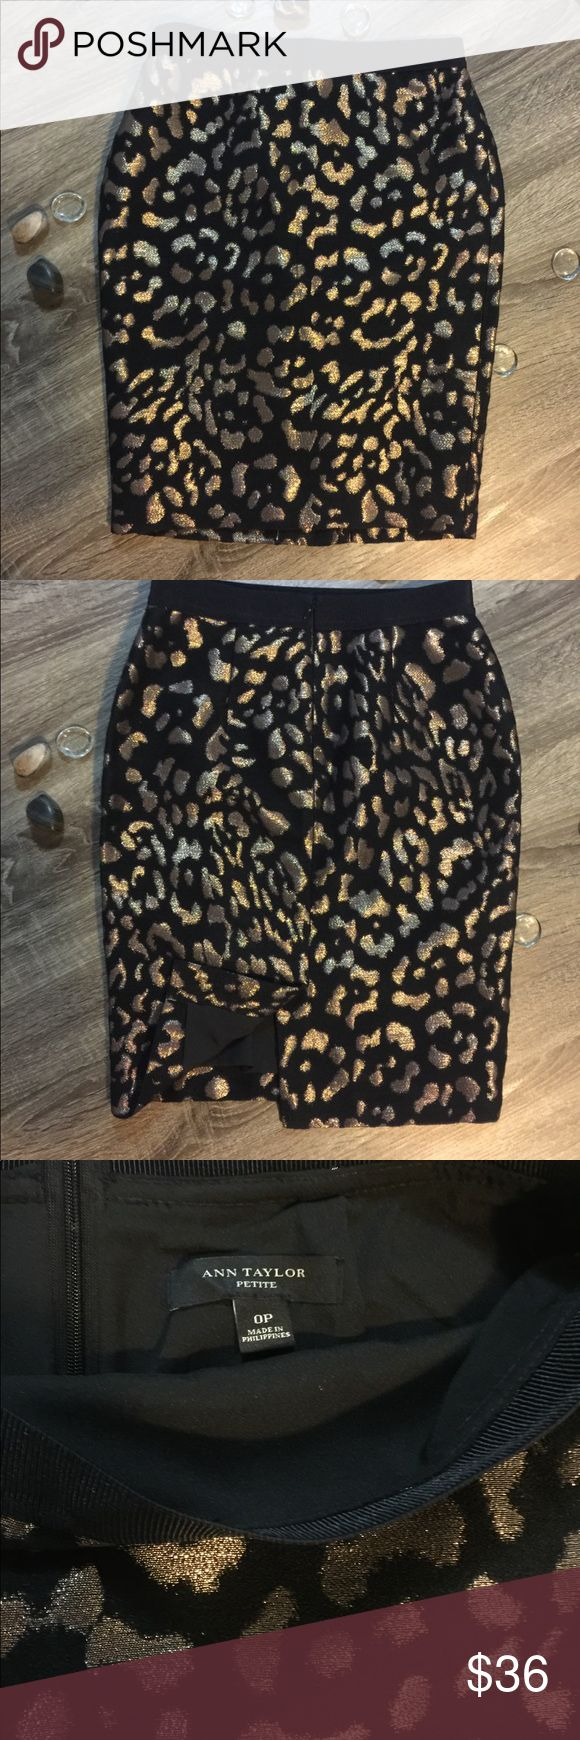 Ann Taylor black and gold leopard pencil skirt Ann Taylor black pencil skirt with metallic gold cheetah style print. Split in the middle back of skirt. Ann Taylor Skirts Pencil